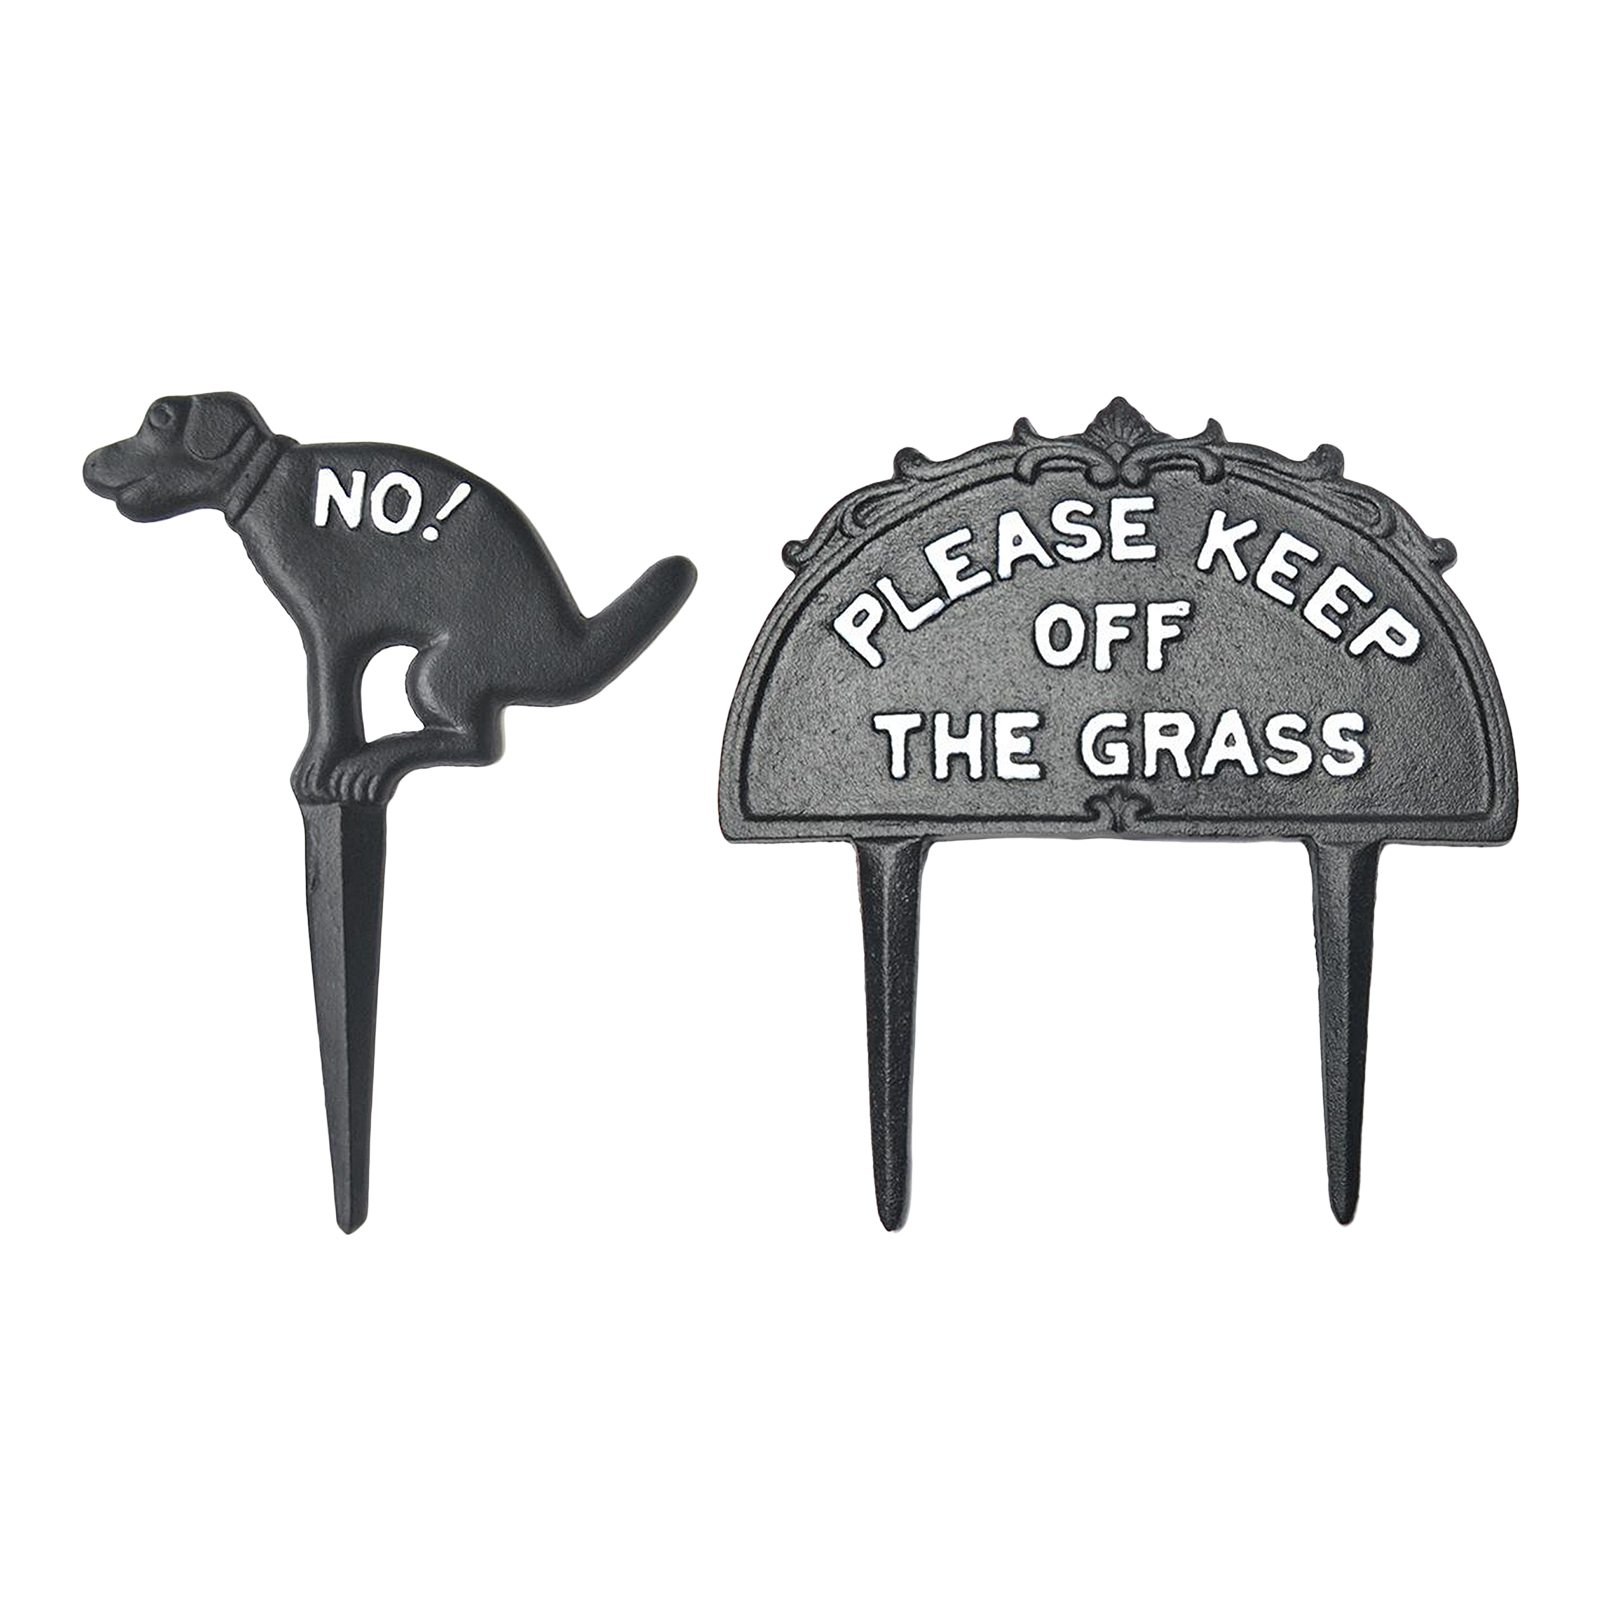 For Pet Fans Home Decors No Dog Pooping Iron Yard Sign  My Pet World Store